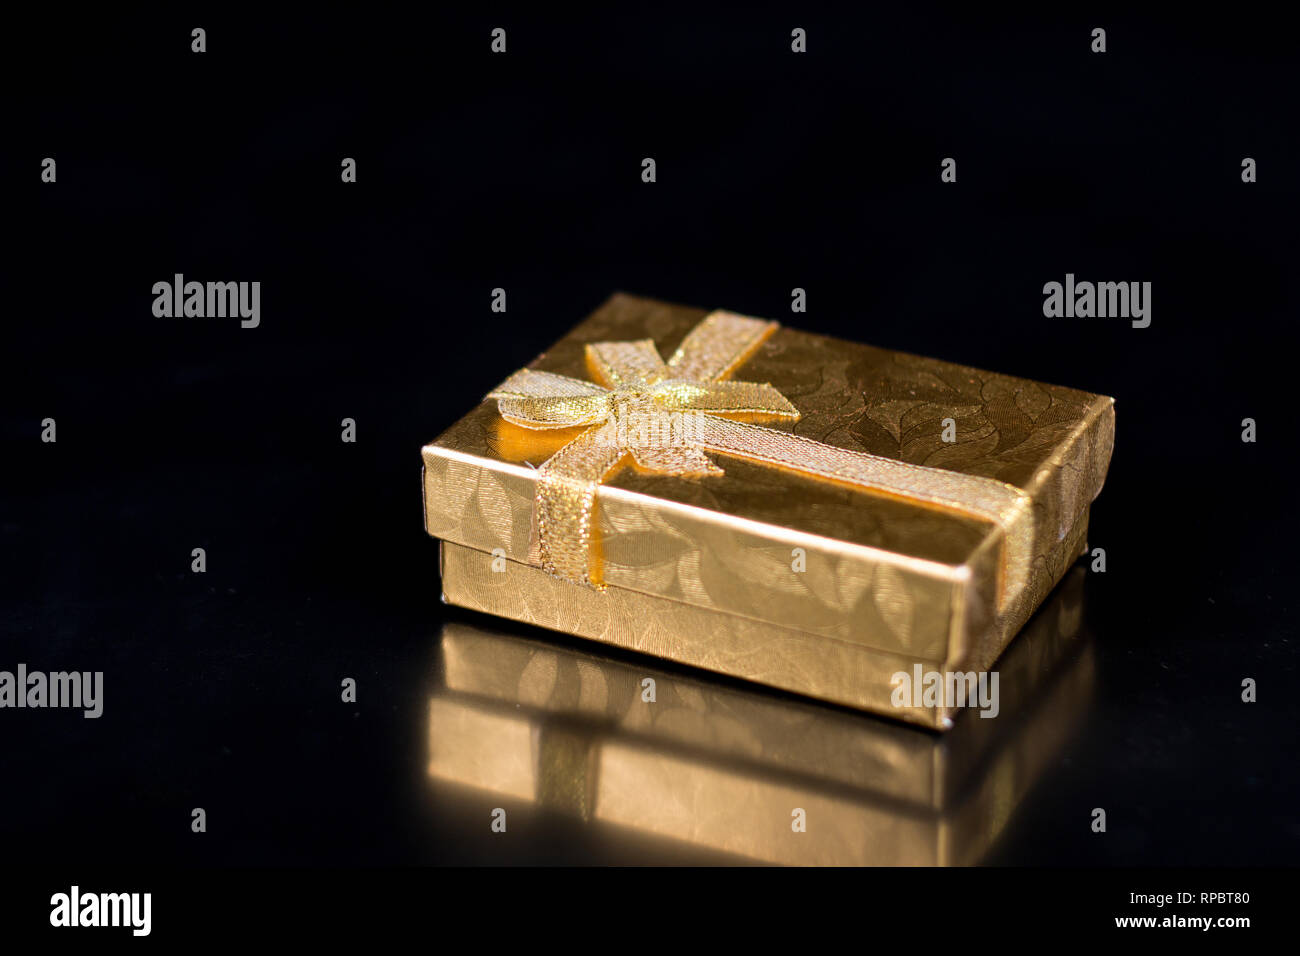 Golden jewellery box on a black glossy background - Stock Image